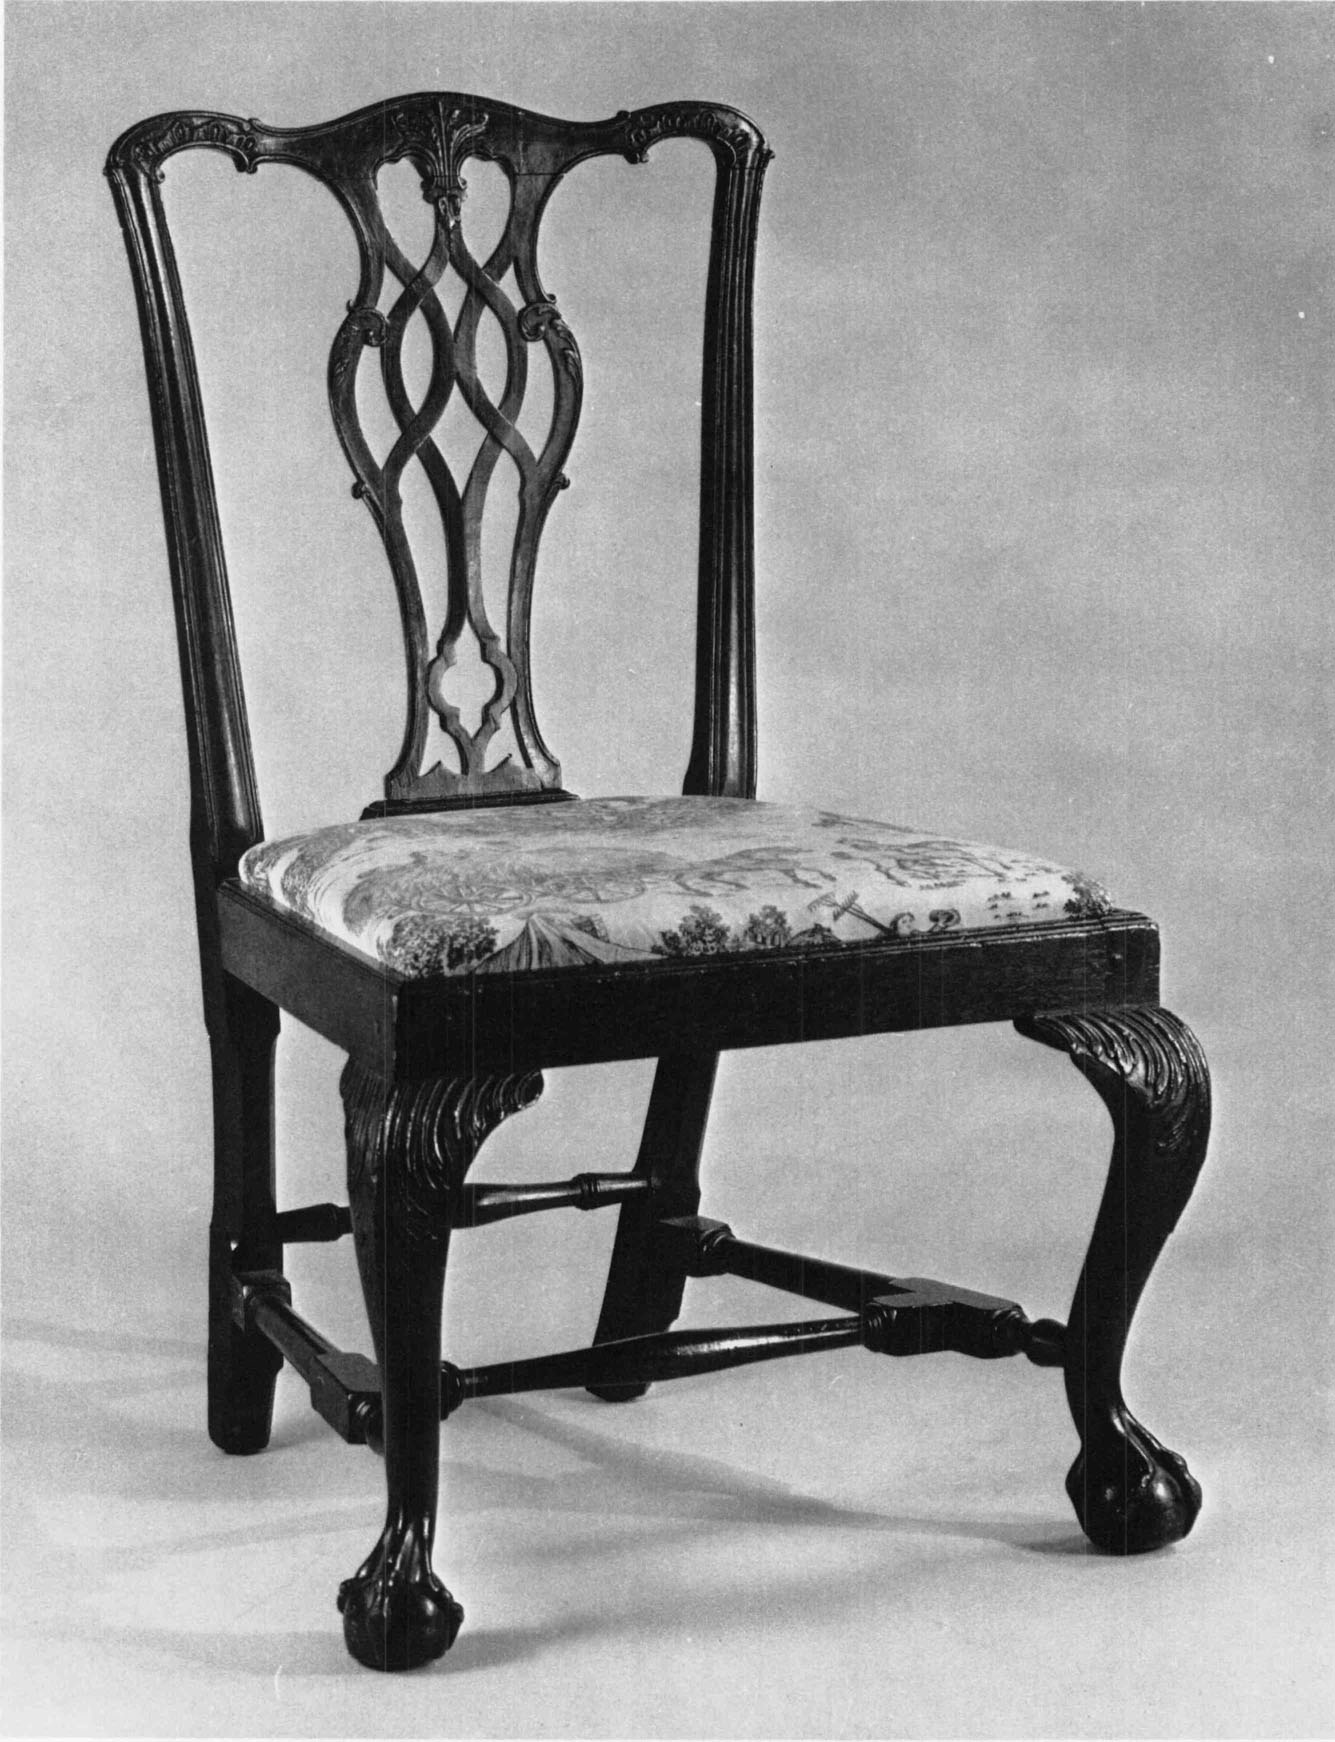 This israel sack american federal mahogany antique lolling arm chair - 37 Inches W 21 Inches D 17 Inches Museum Of Fine Arts Boston Gift Of Mrs F Carrington Weems 60 1176 This Chair Descended In